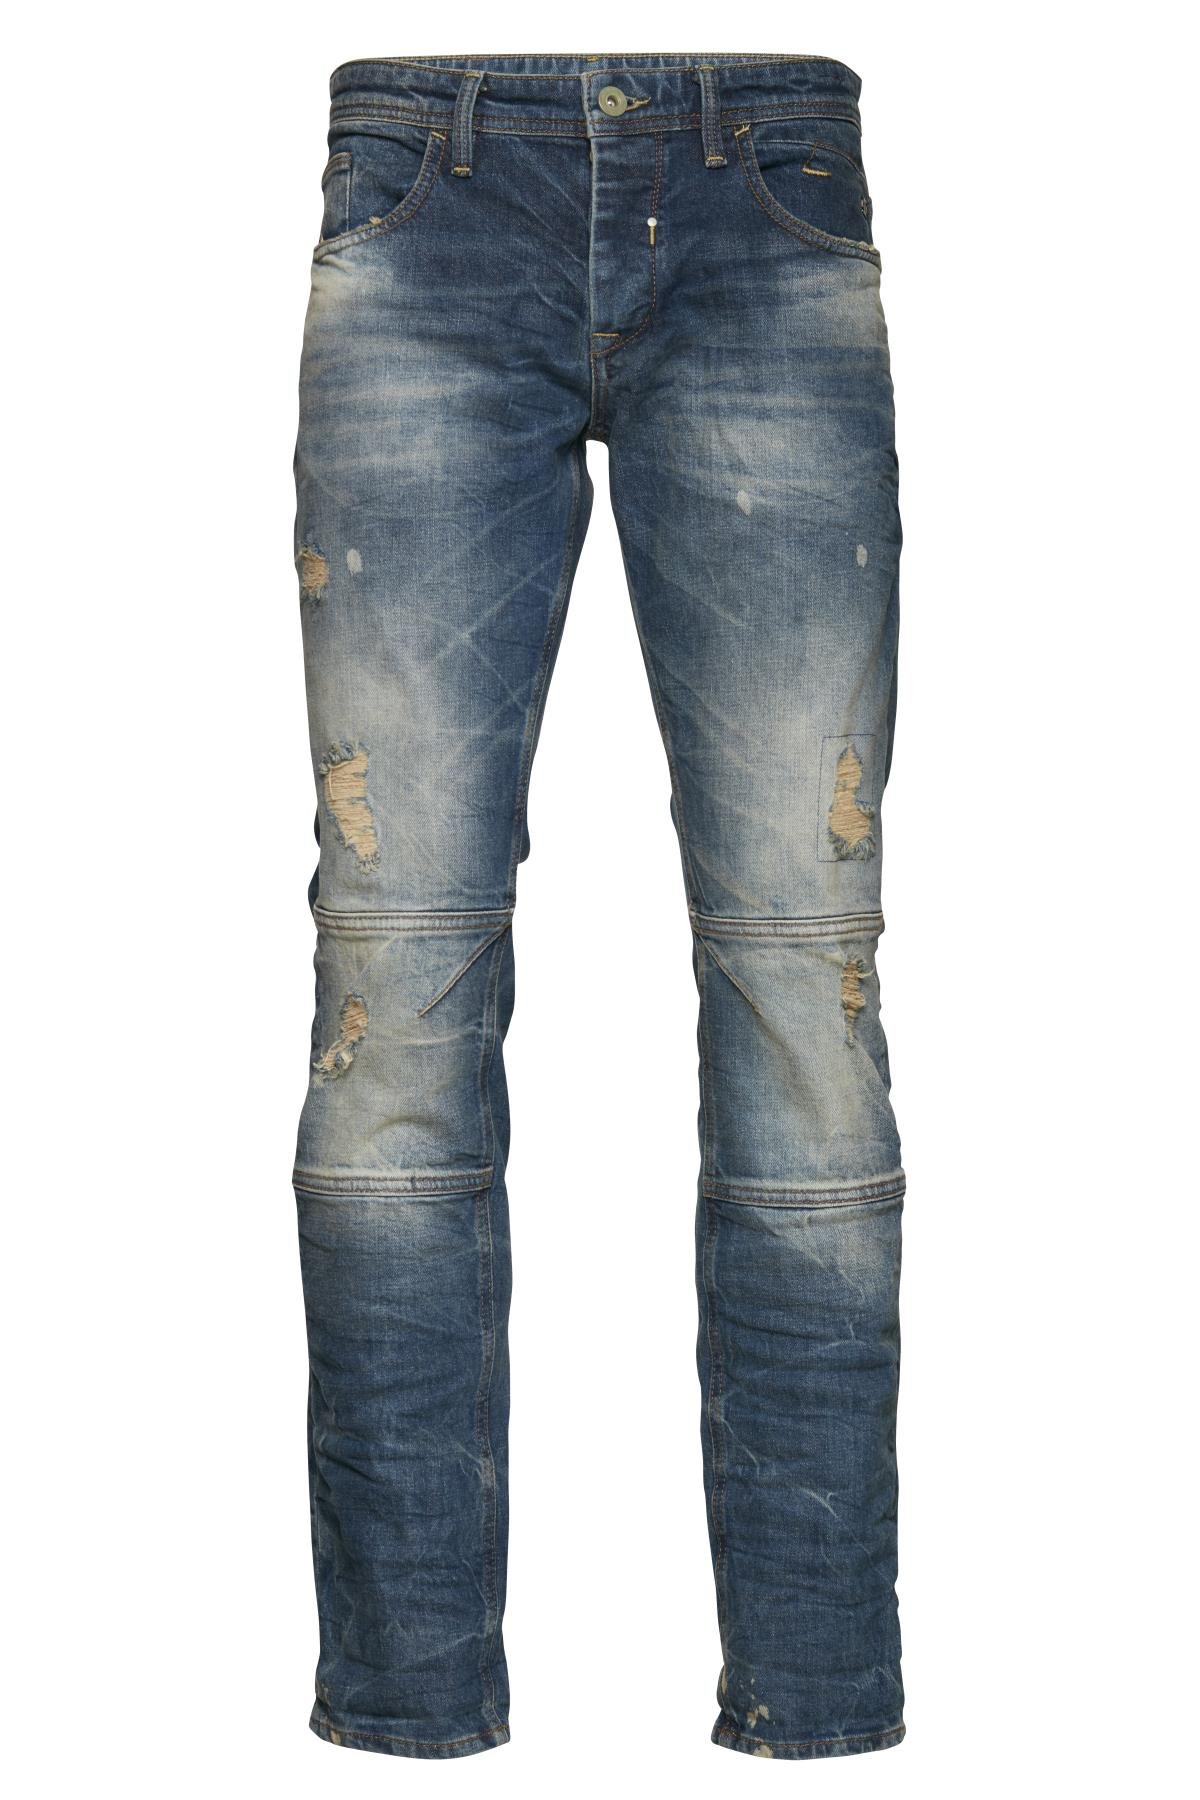 Denim Middle blue Blizzard jeans fra Blend He – Køb Denim Middle blue Blizzard jeans fra str. 28-40 her